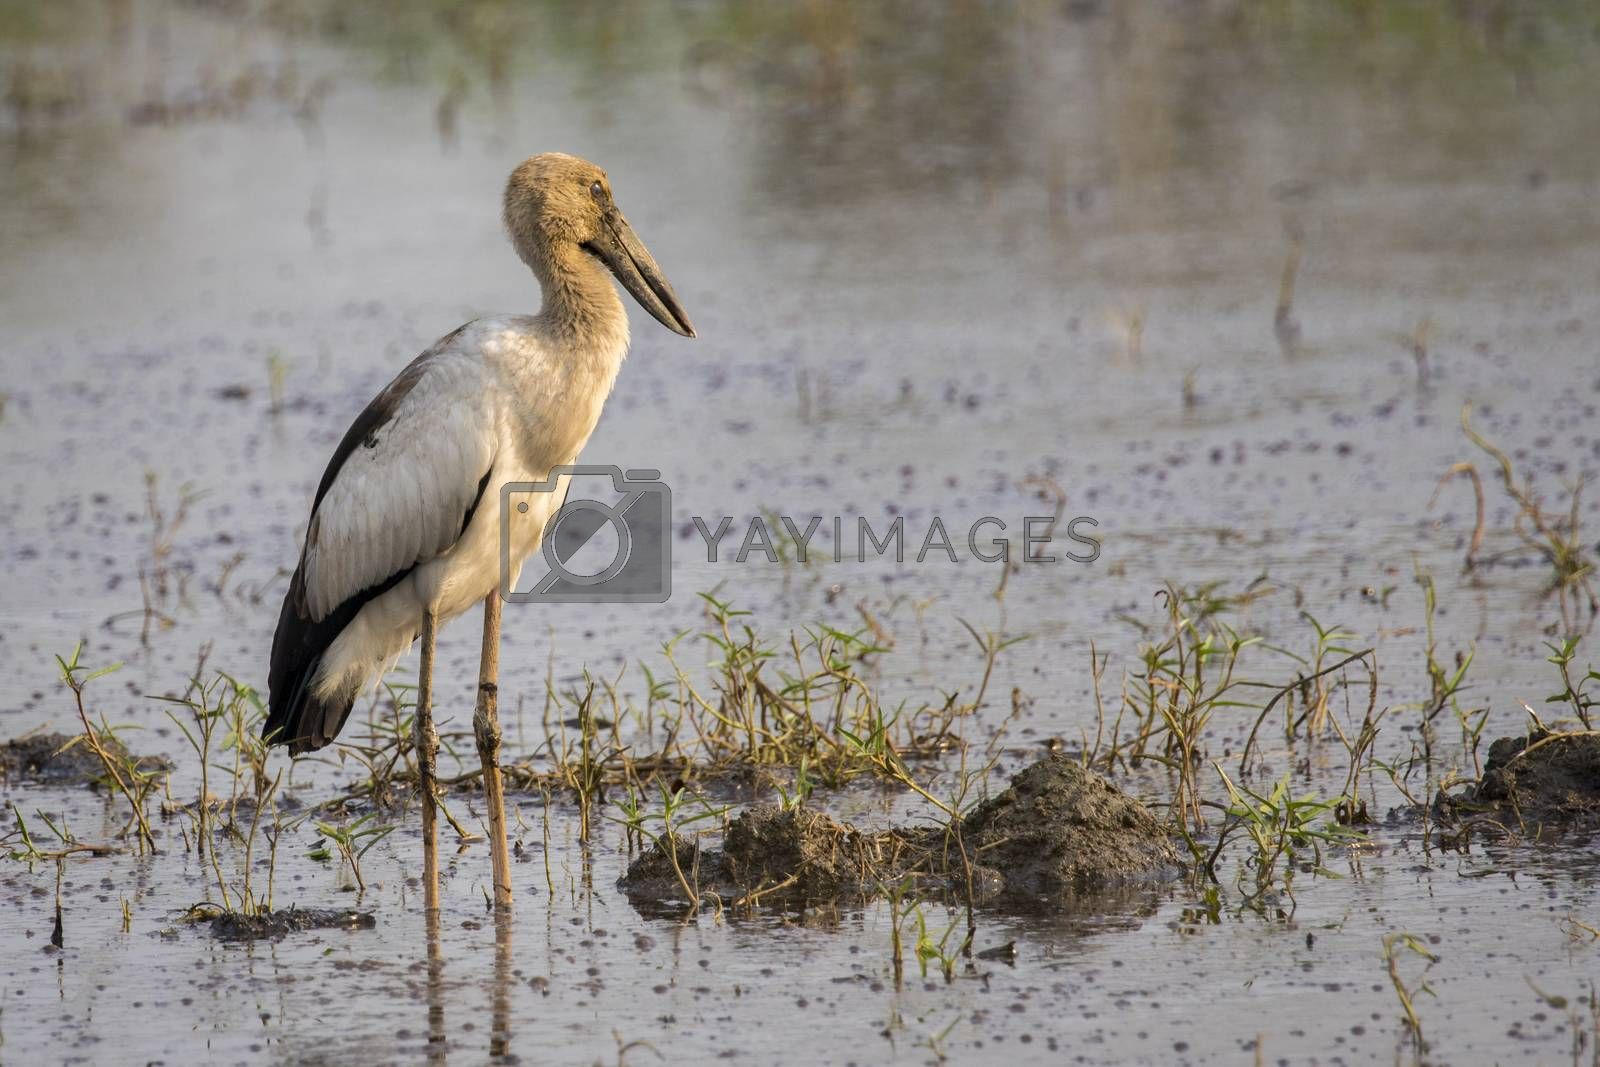 Image of Asian openbill stork on natural background. Wild Animals.